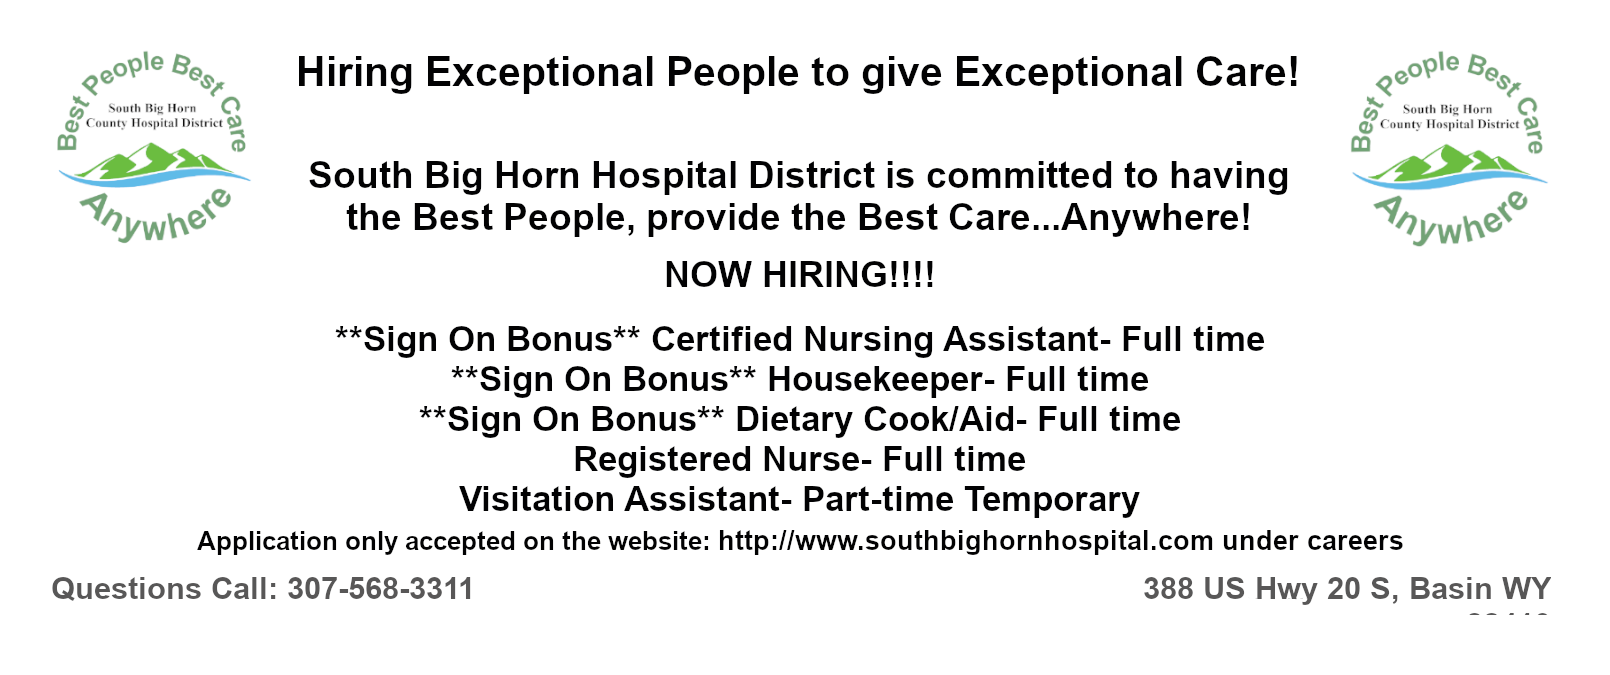 NOW HIRING!!!! **Sign On Bonus** Certified Nursing Assistant- Full time **Sign On Bonus** Housekeeper- Full time **Sign On Bonus** Dietary Cook/Aid- Full time Registered Nurse- Full time Visitation Assistant- Part-time Temporary Apply under the Careers Tab.